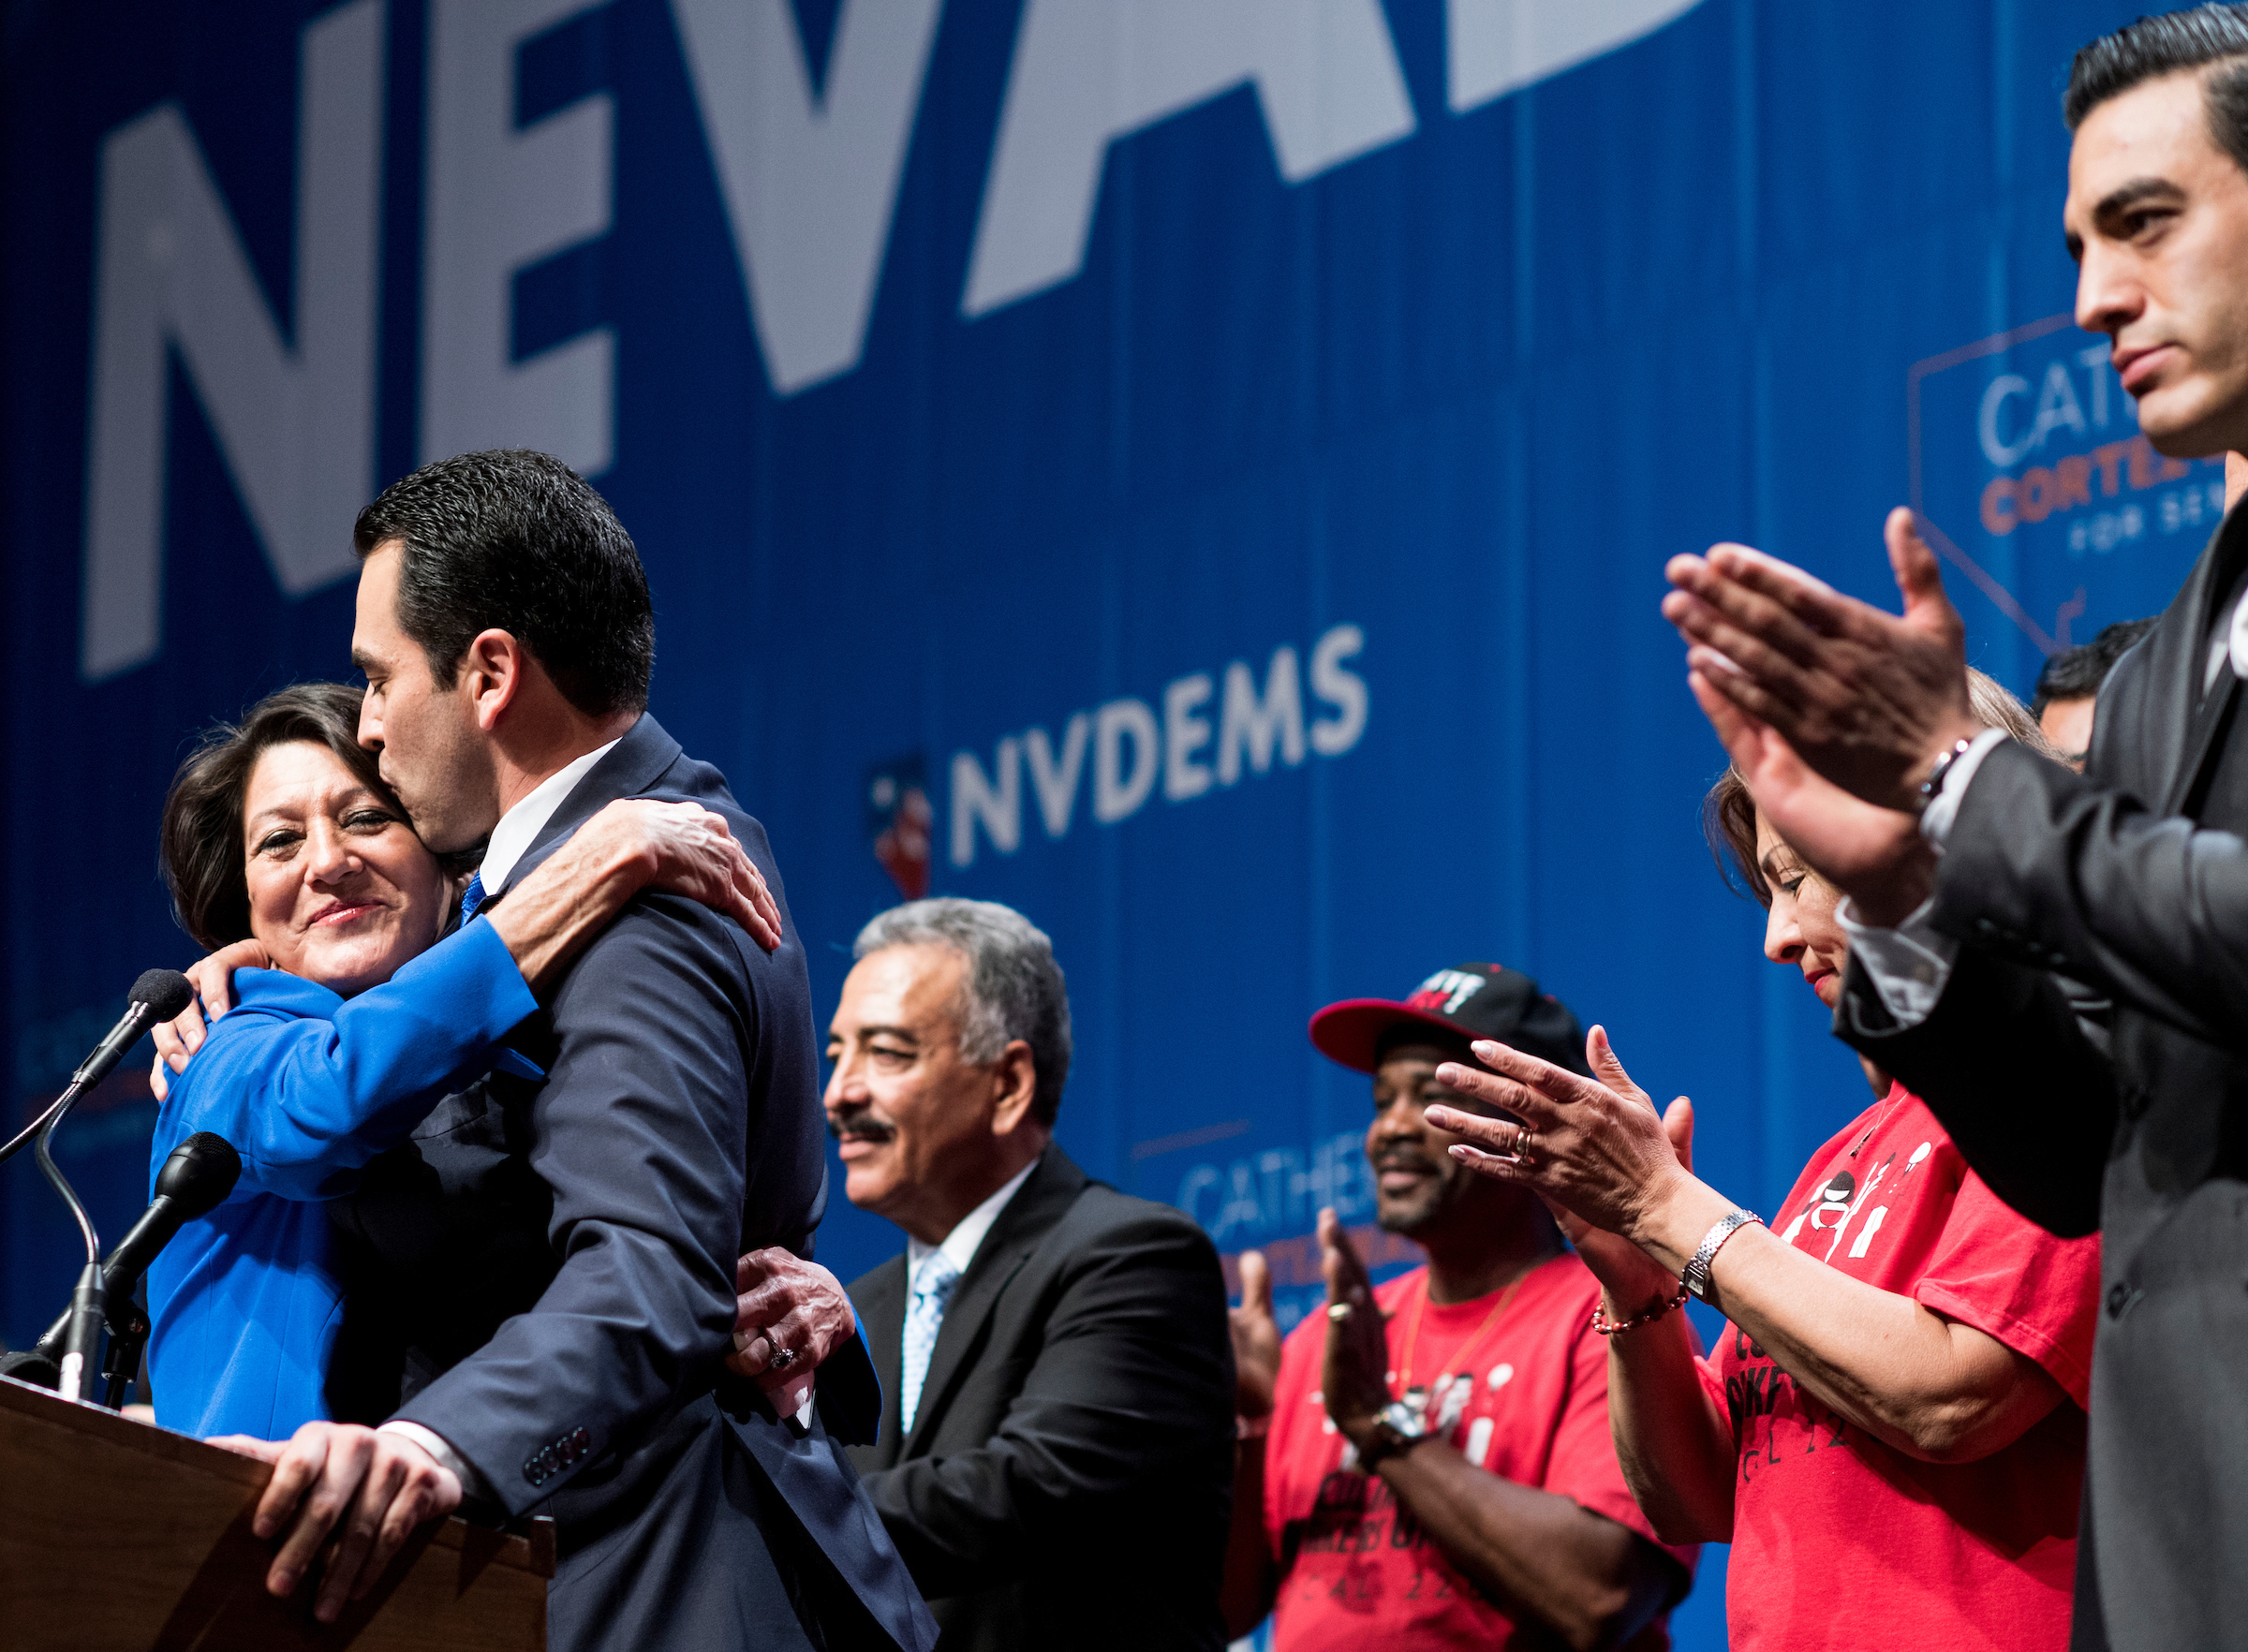 UNITED STATES - NOVEMBER 8: Rep.-elect Ruben Kihuen, D-Nev., kisses his mother as he delivers his victory speech flanked by his family and supporters at the Nevada Democrats' election night watch party at the Aria Hotel & Resort in Las Vegas on Election Day, Nov. 8, 2016. (Photo By Bill Clark/CQ Roll Call)